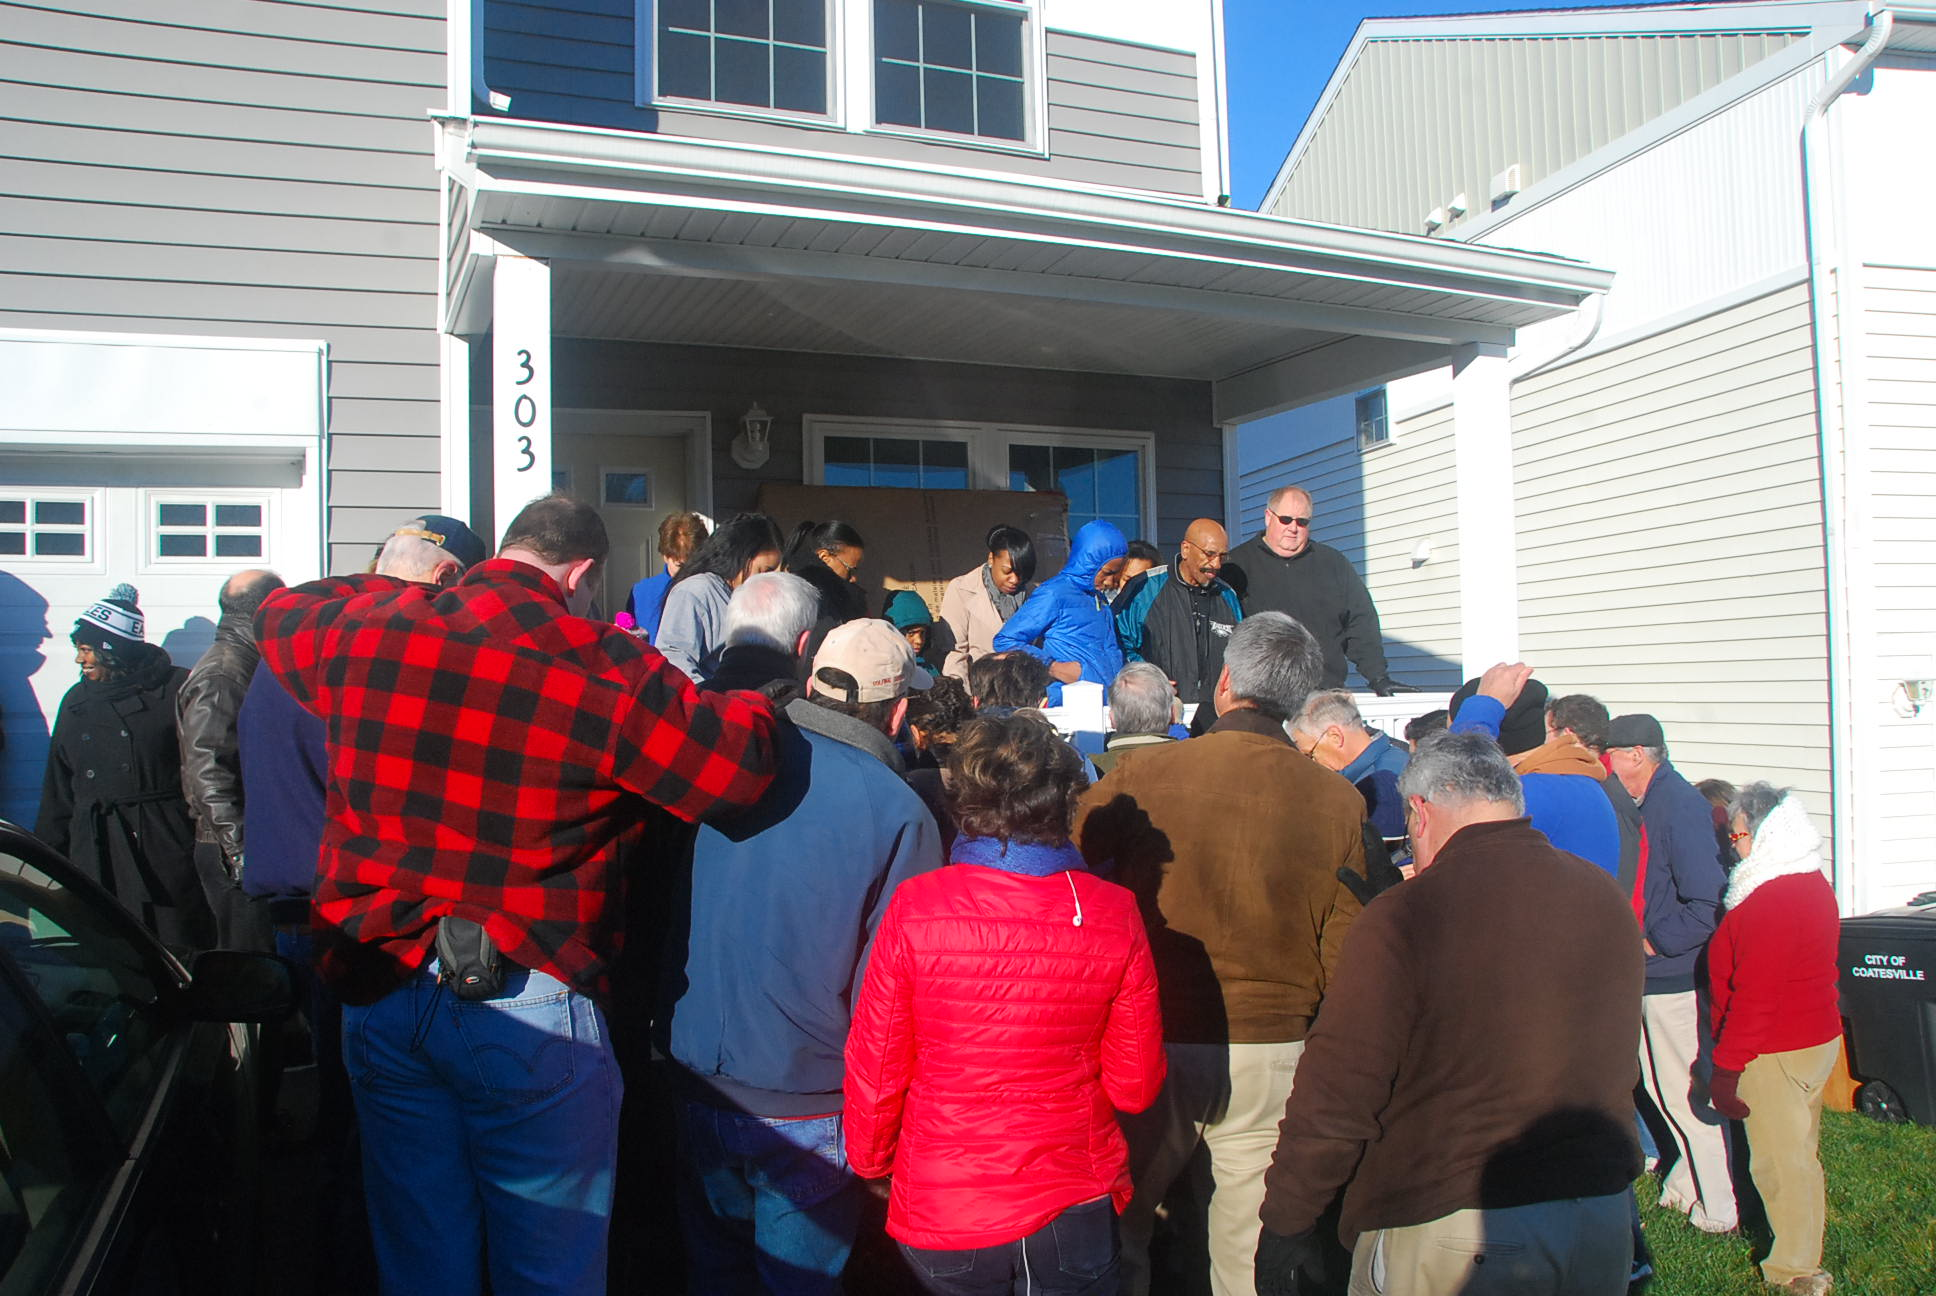 Restore Donations Habitat For Humanity Chester County Home Dedications Archives - Habitat for Humanity Chester ...